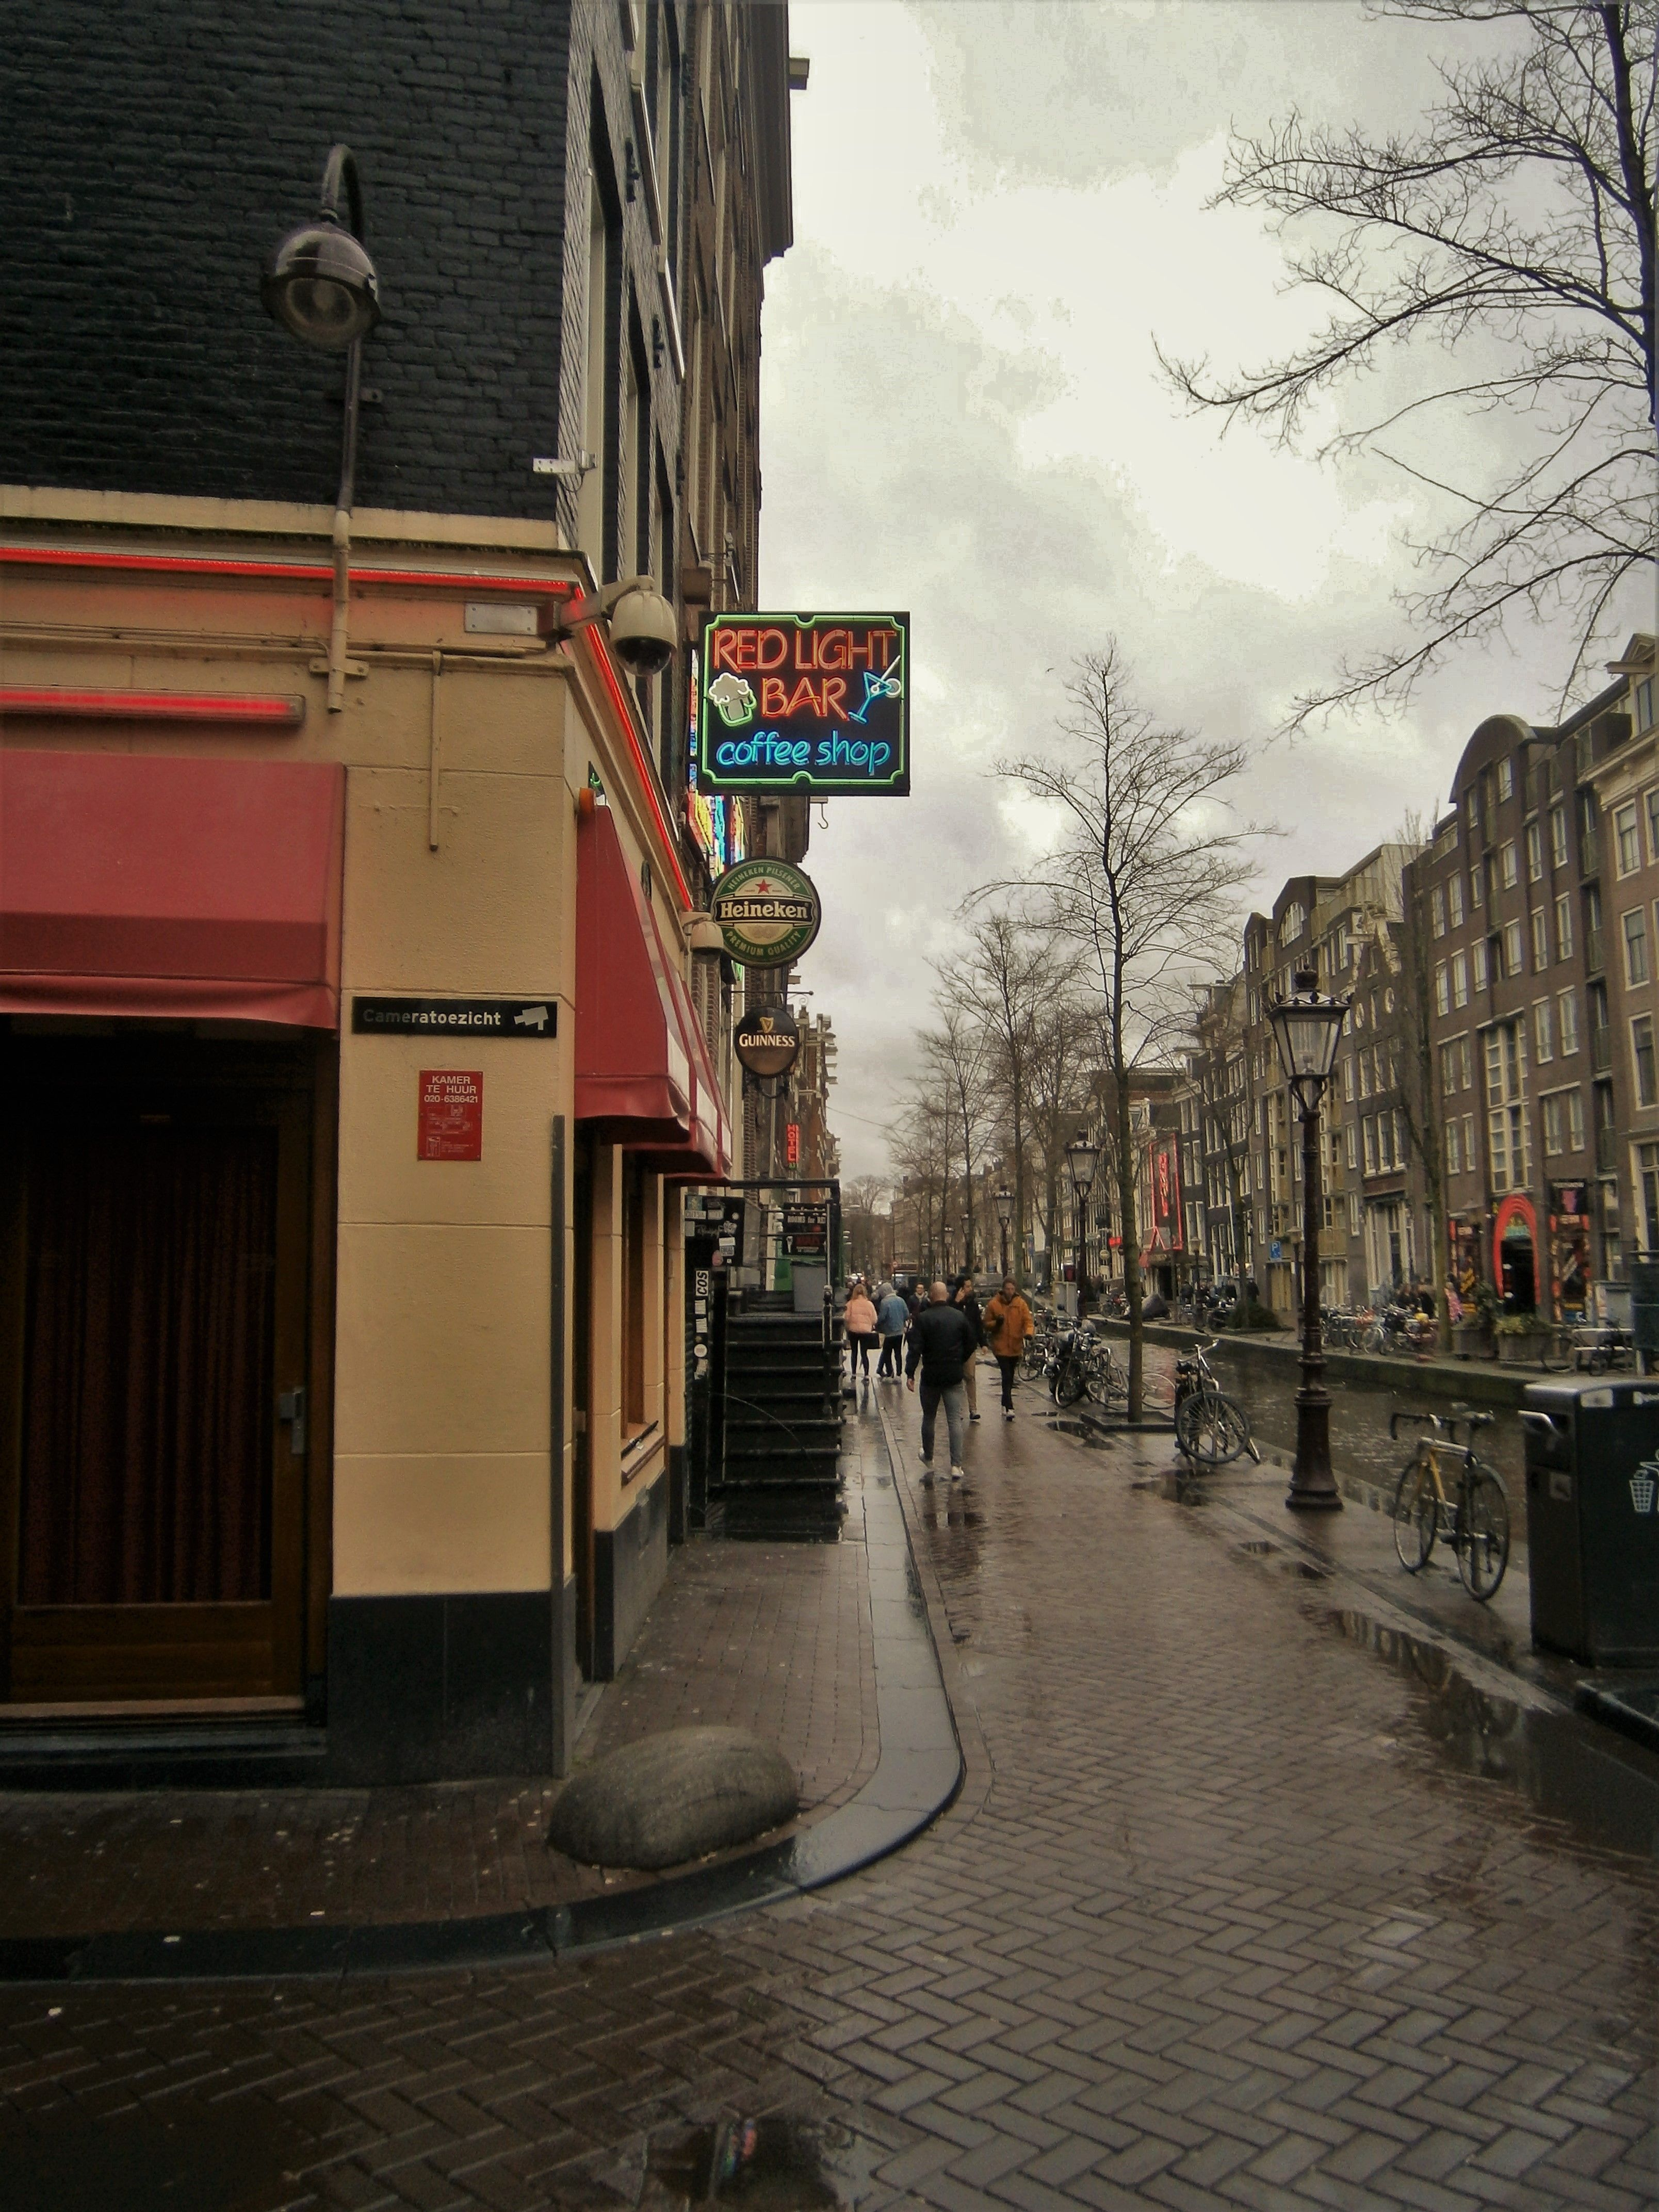 Red light bar amsterdam pubs and inns pinterest red light bar amsterdam aloadofball Image collections